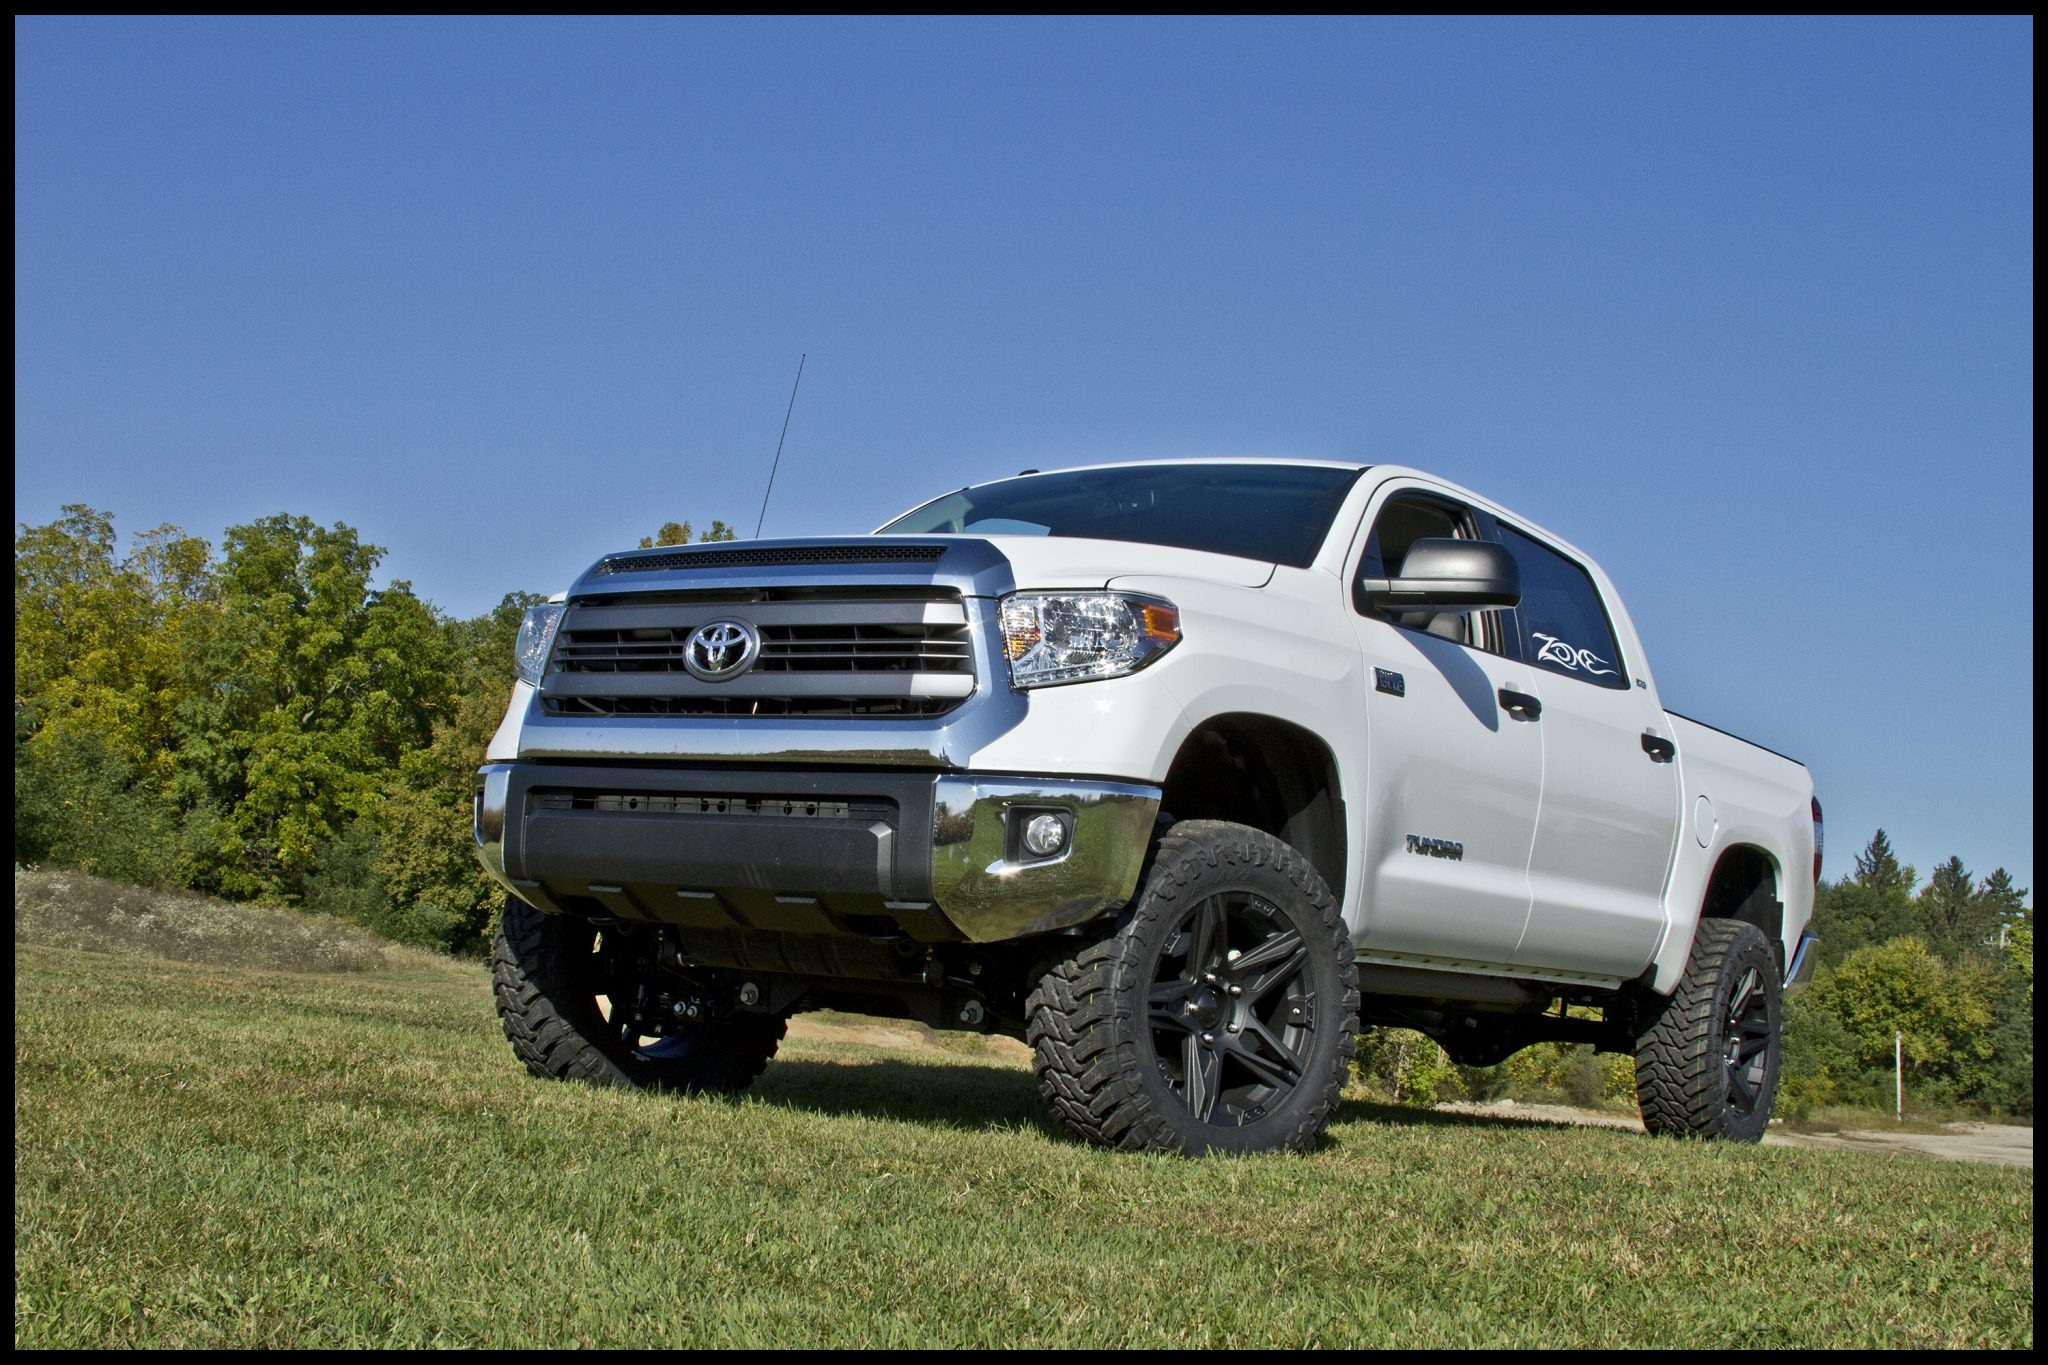 Hot News Zone Froad Products Suspension Lift Kit 5 toyota Tundra Oukasfo Reviews